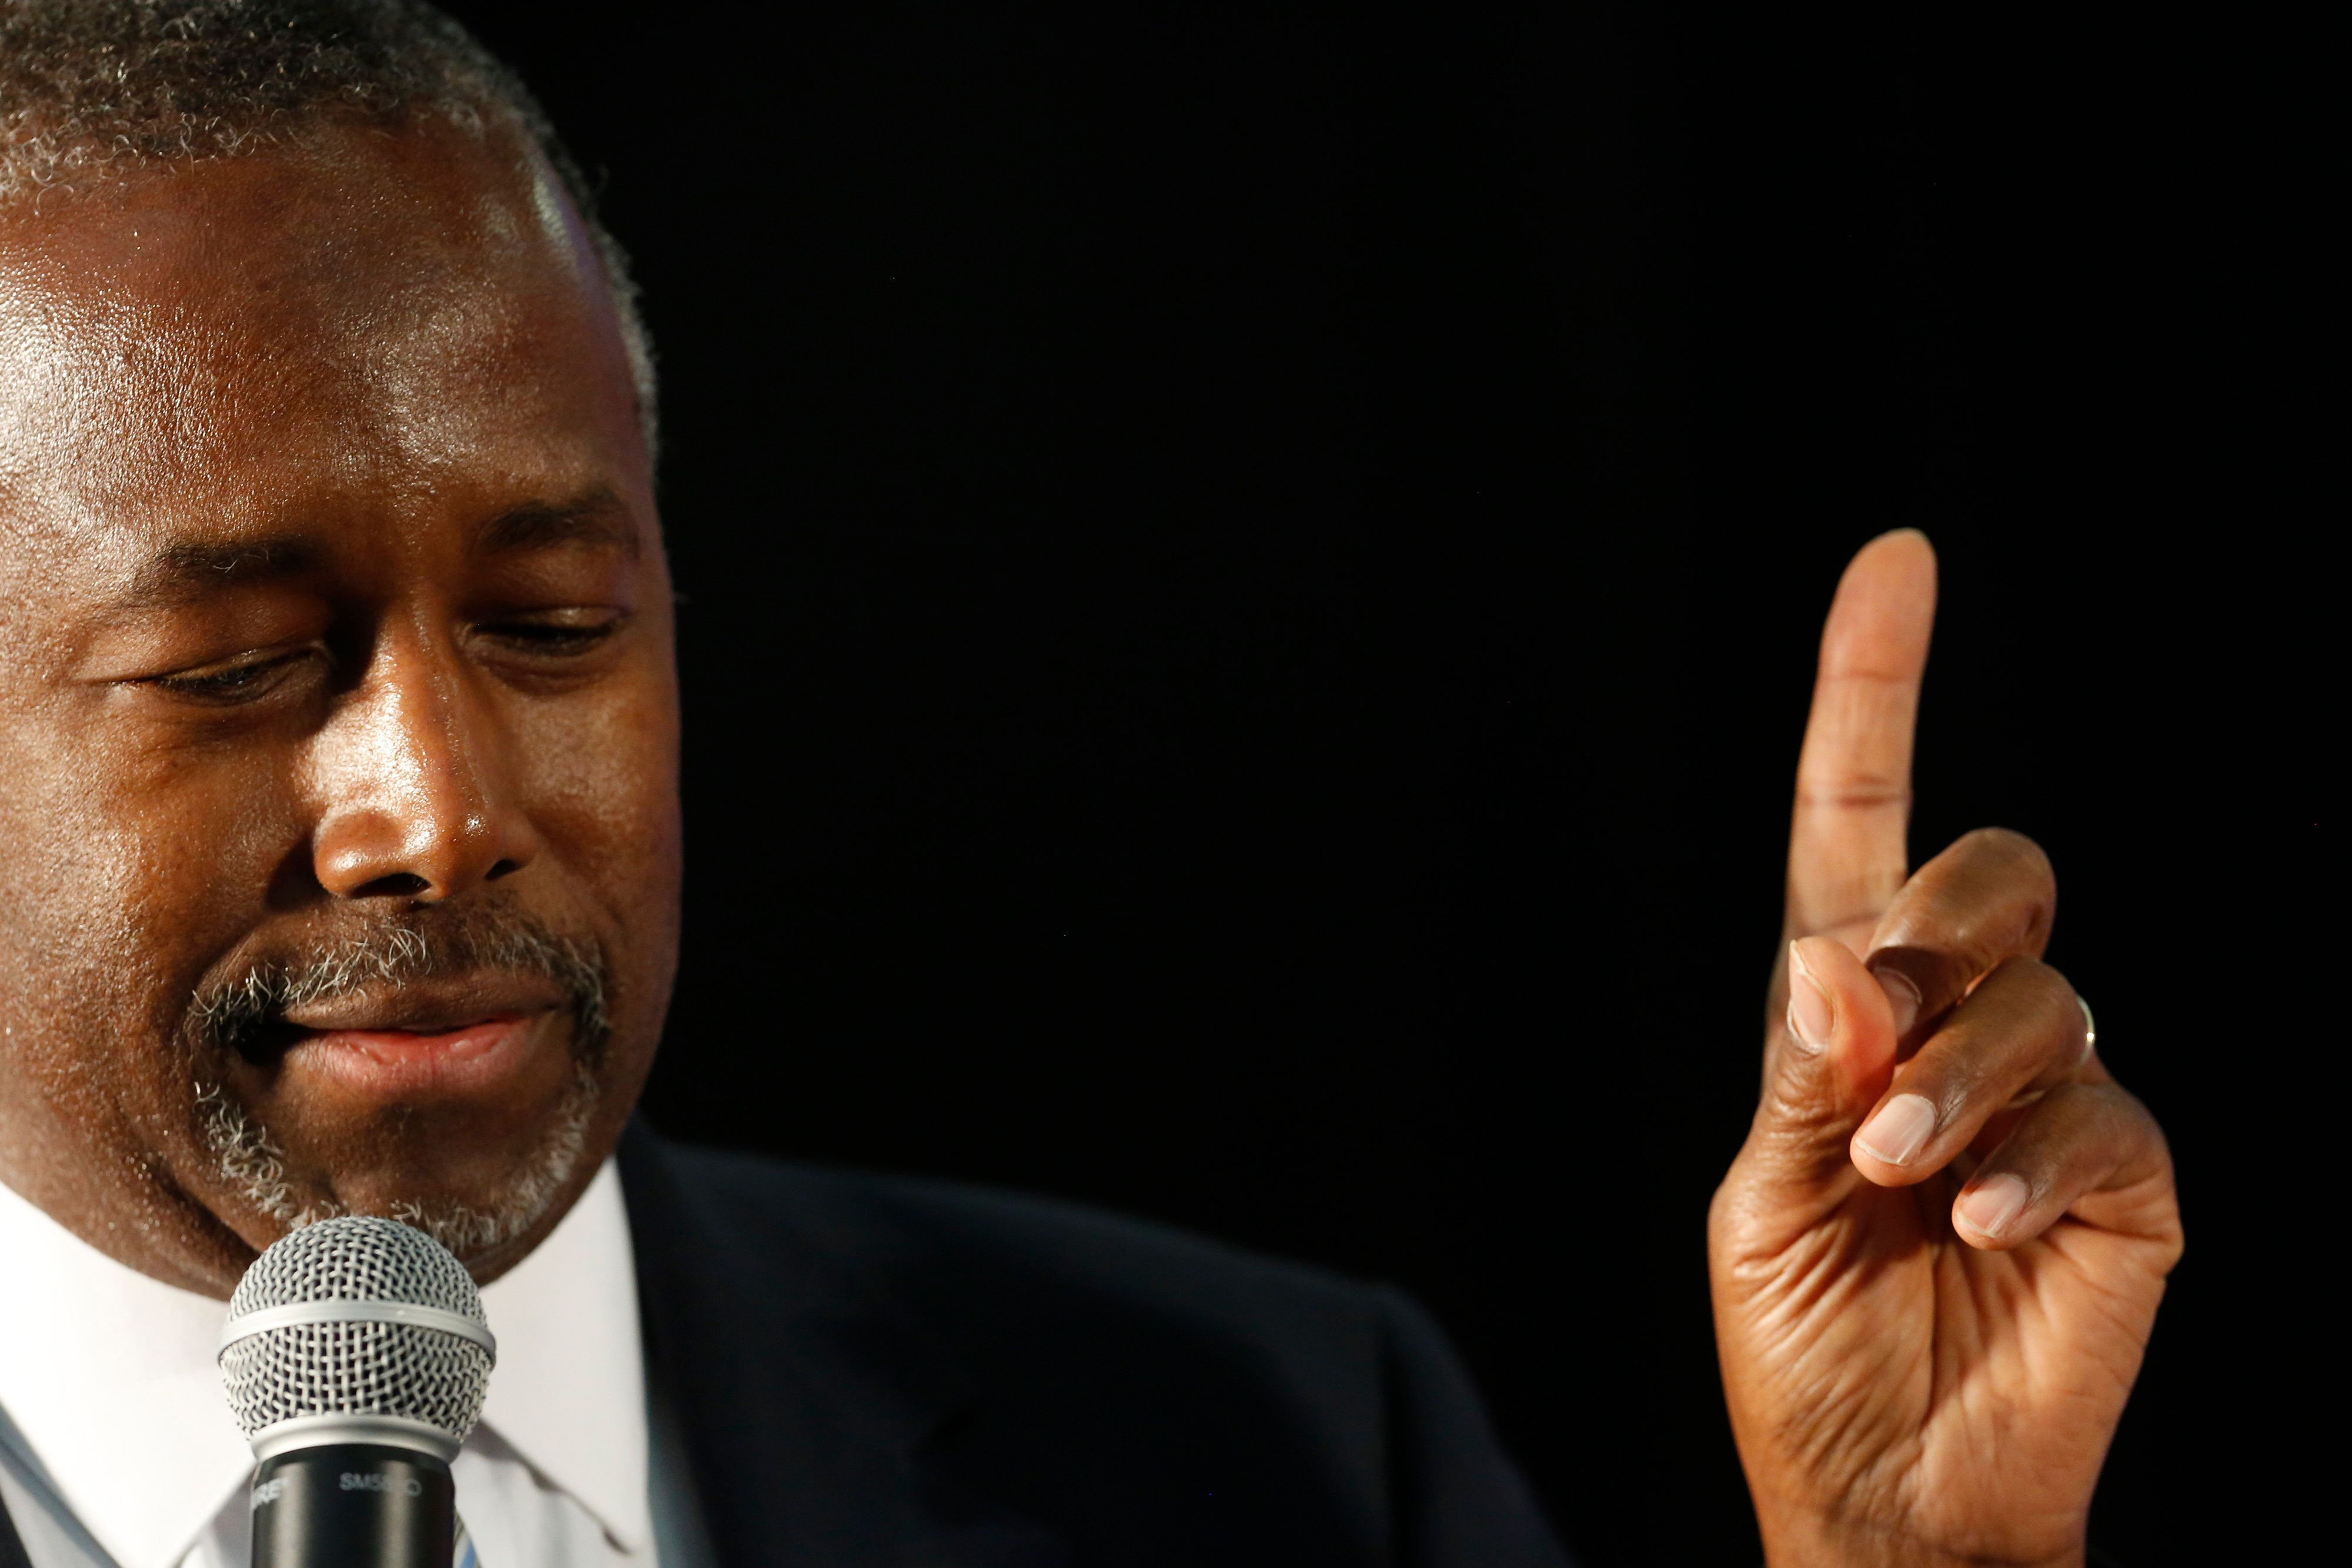 GOP presidential candidate Ben Carson seemed confused about what the debt ceiling is in a Wednesday interview.